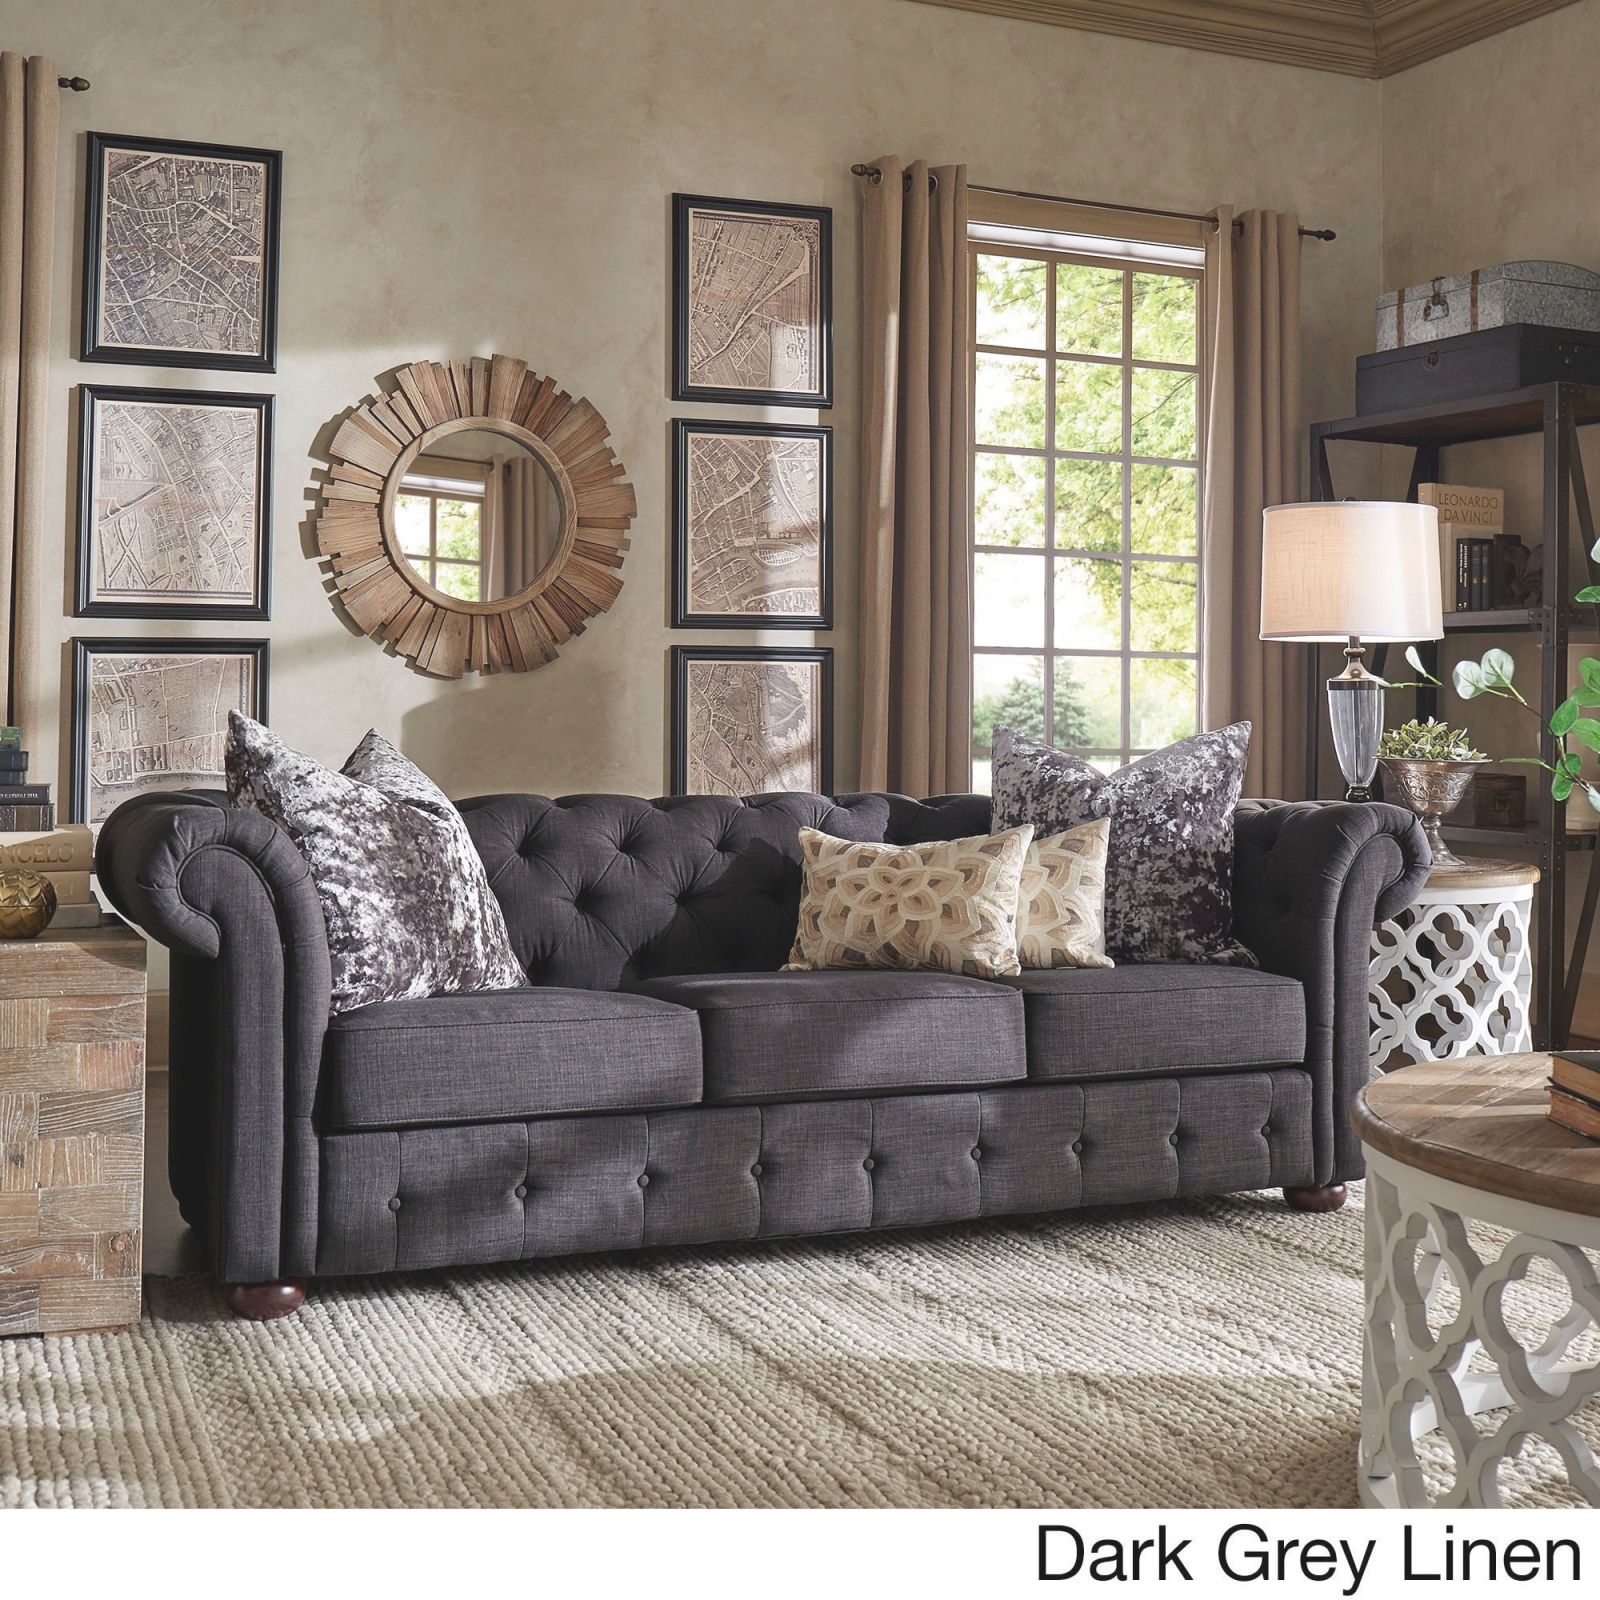 Knightsbridge Tufted Scroll Arm Chesterfield Sofainspire Q Artisan pertaining to Tufted Living Room Furniture